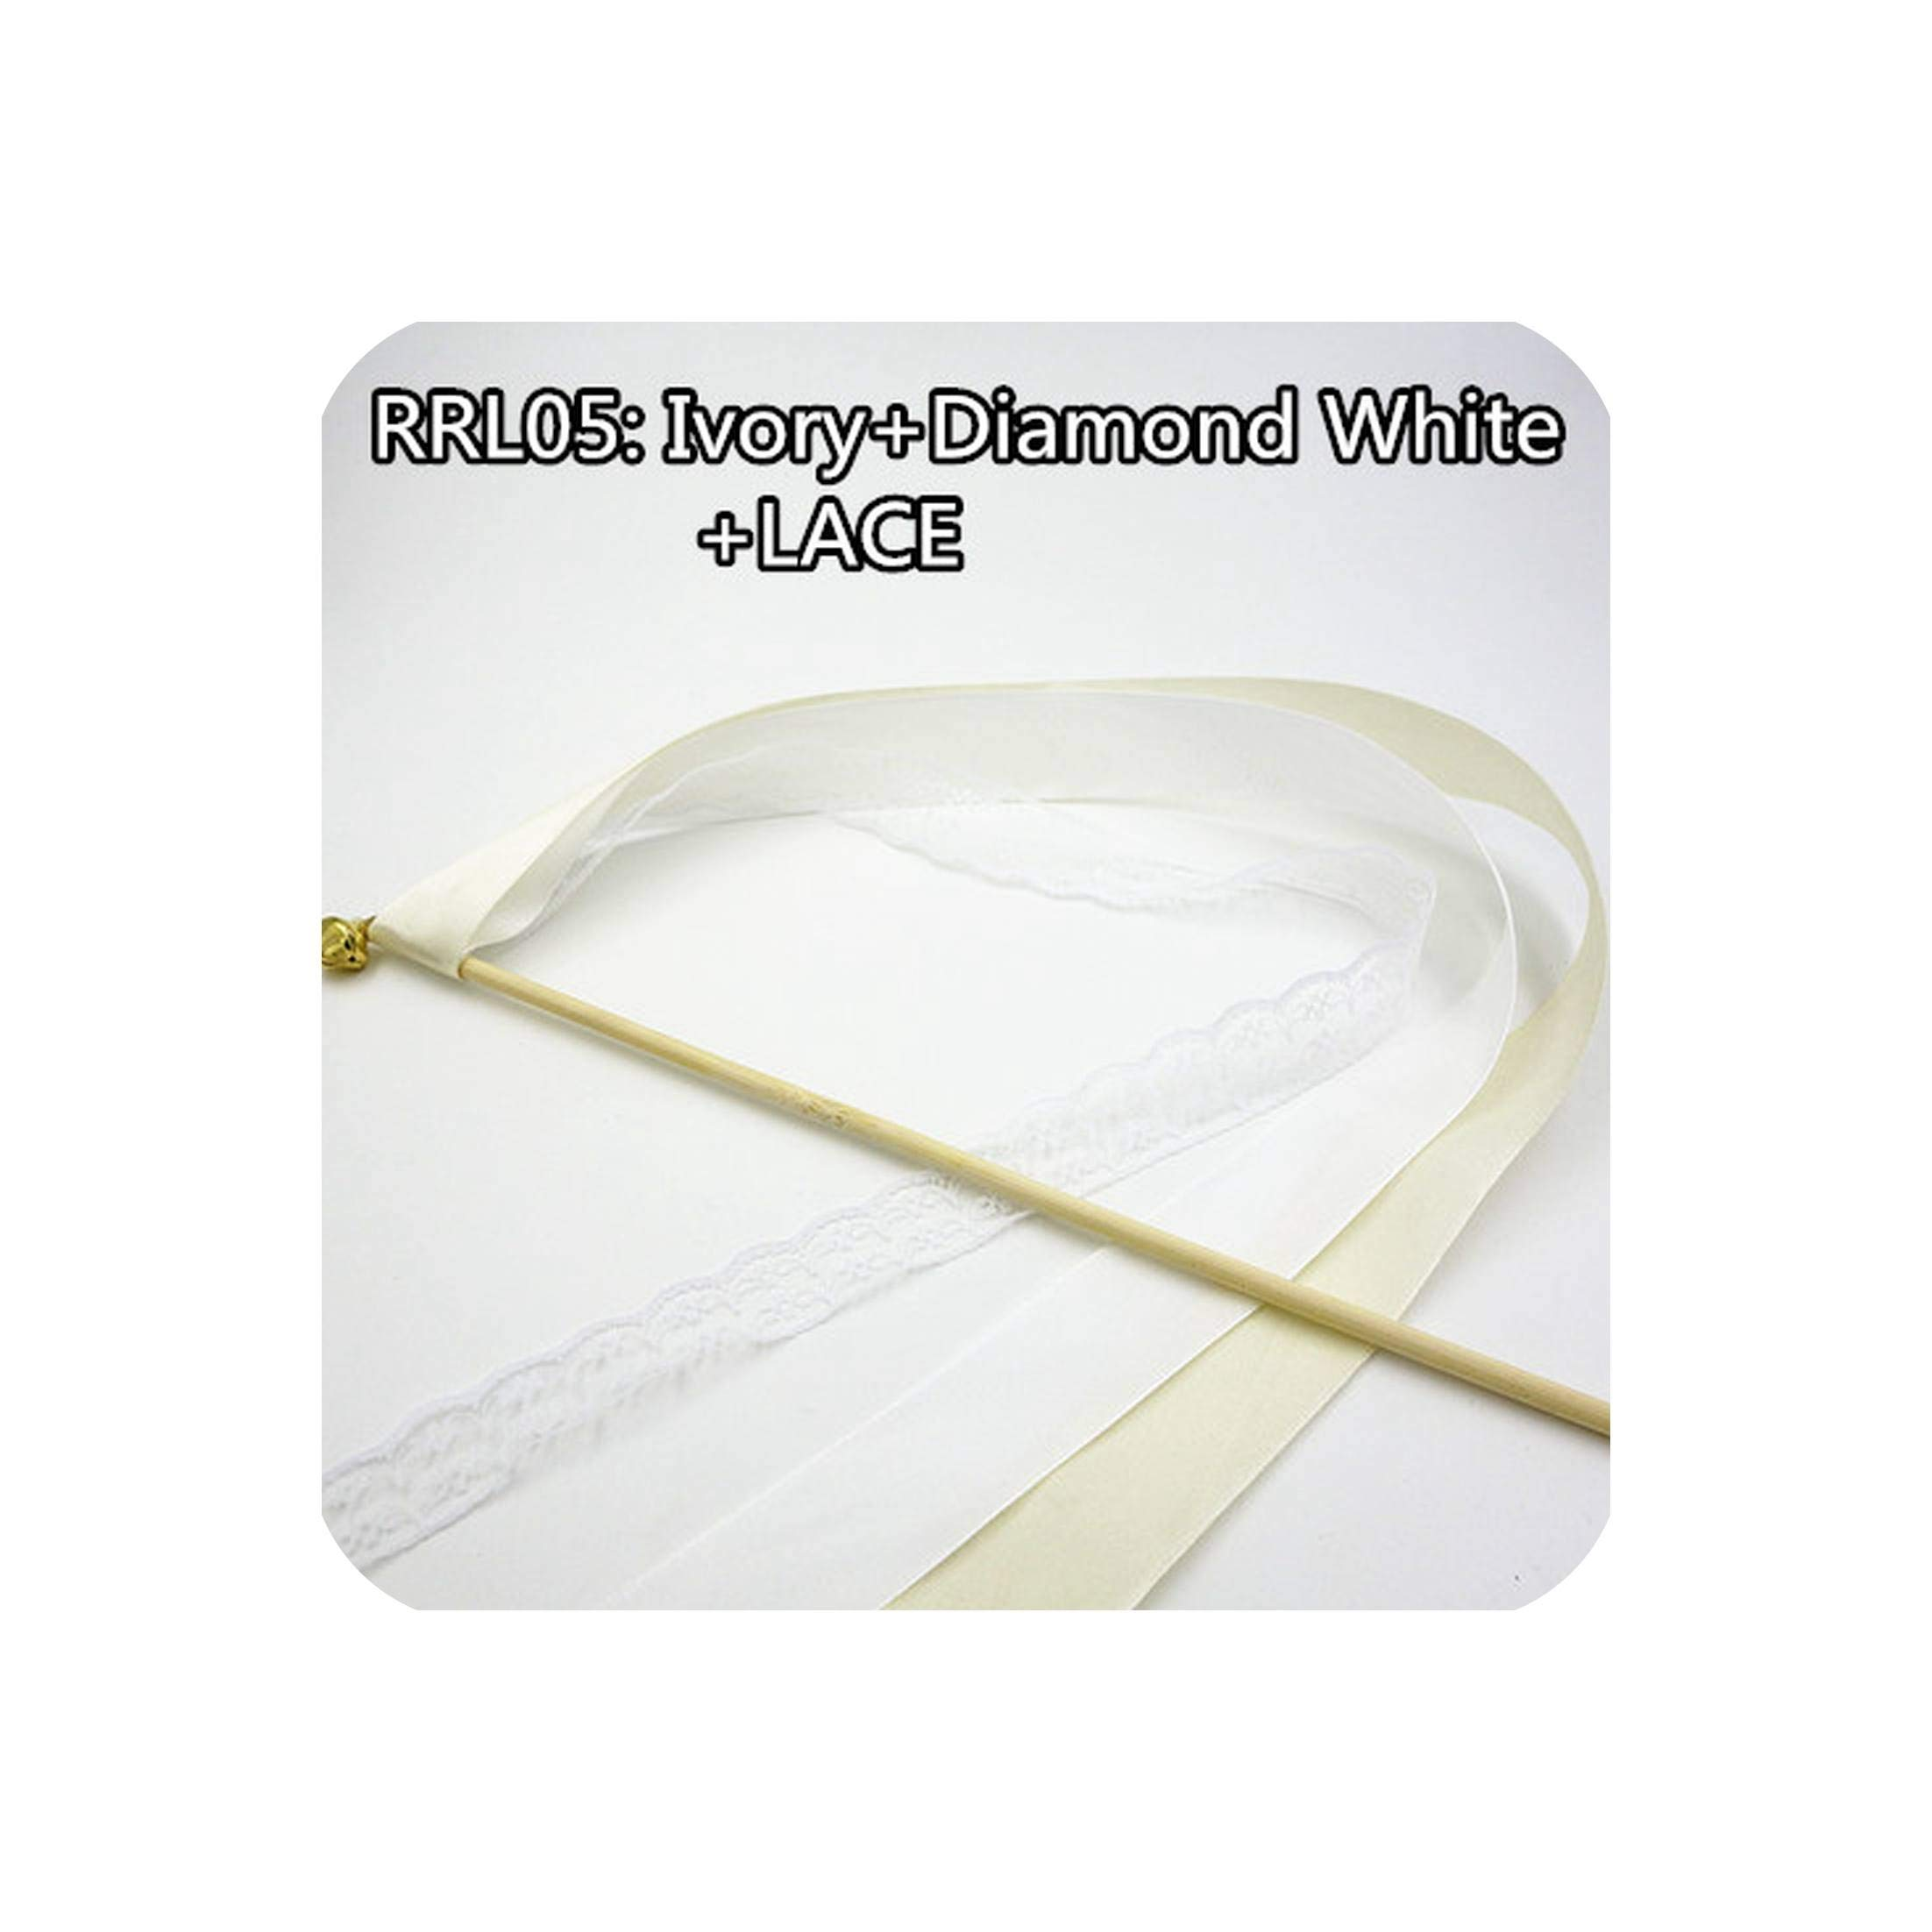 50Pcs Ribbon And Lace Wands Twirling Streamers Wedding Ribbon Stick Streamers Stick With Bell Send Off Bell Wands,Rrl05,White Lace